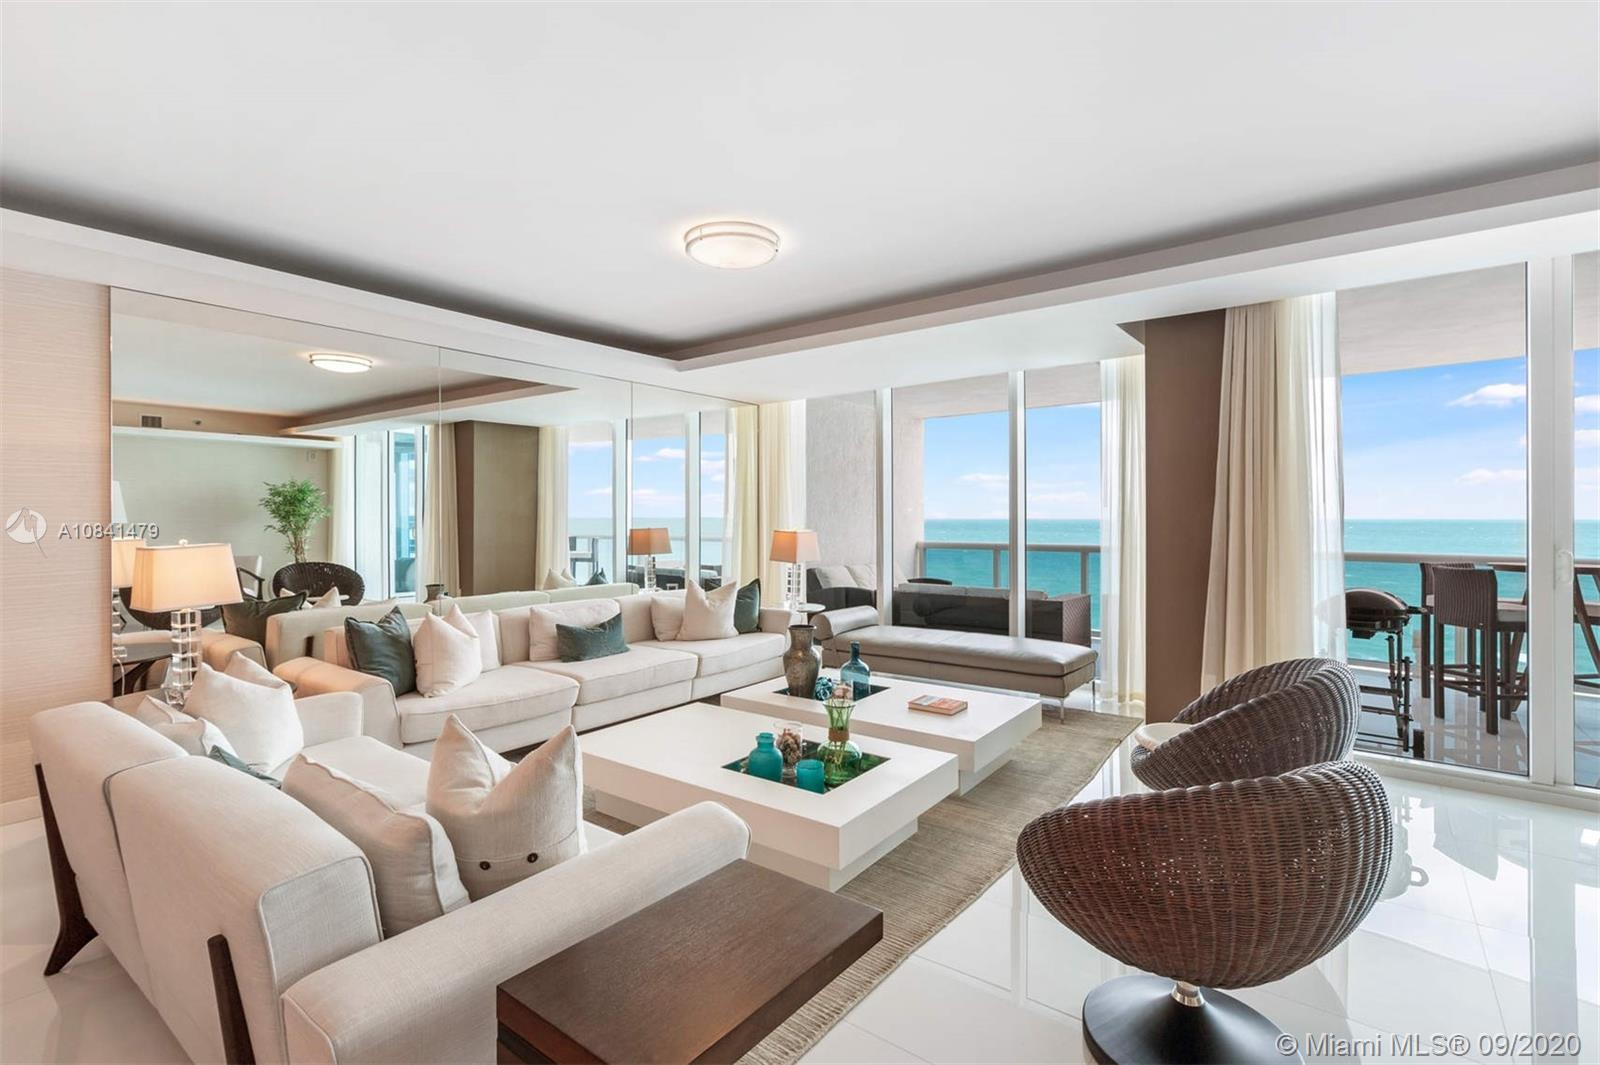 Amazing opportunity to acquire a turnkey residence at prestigious Trump Hollywood, an ocean front co